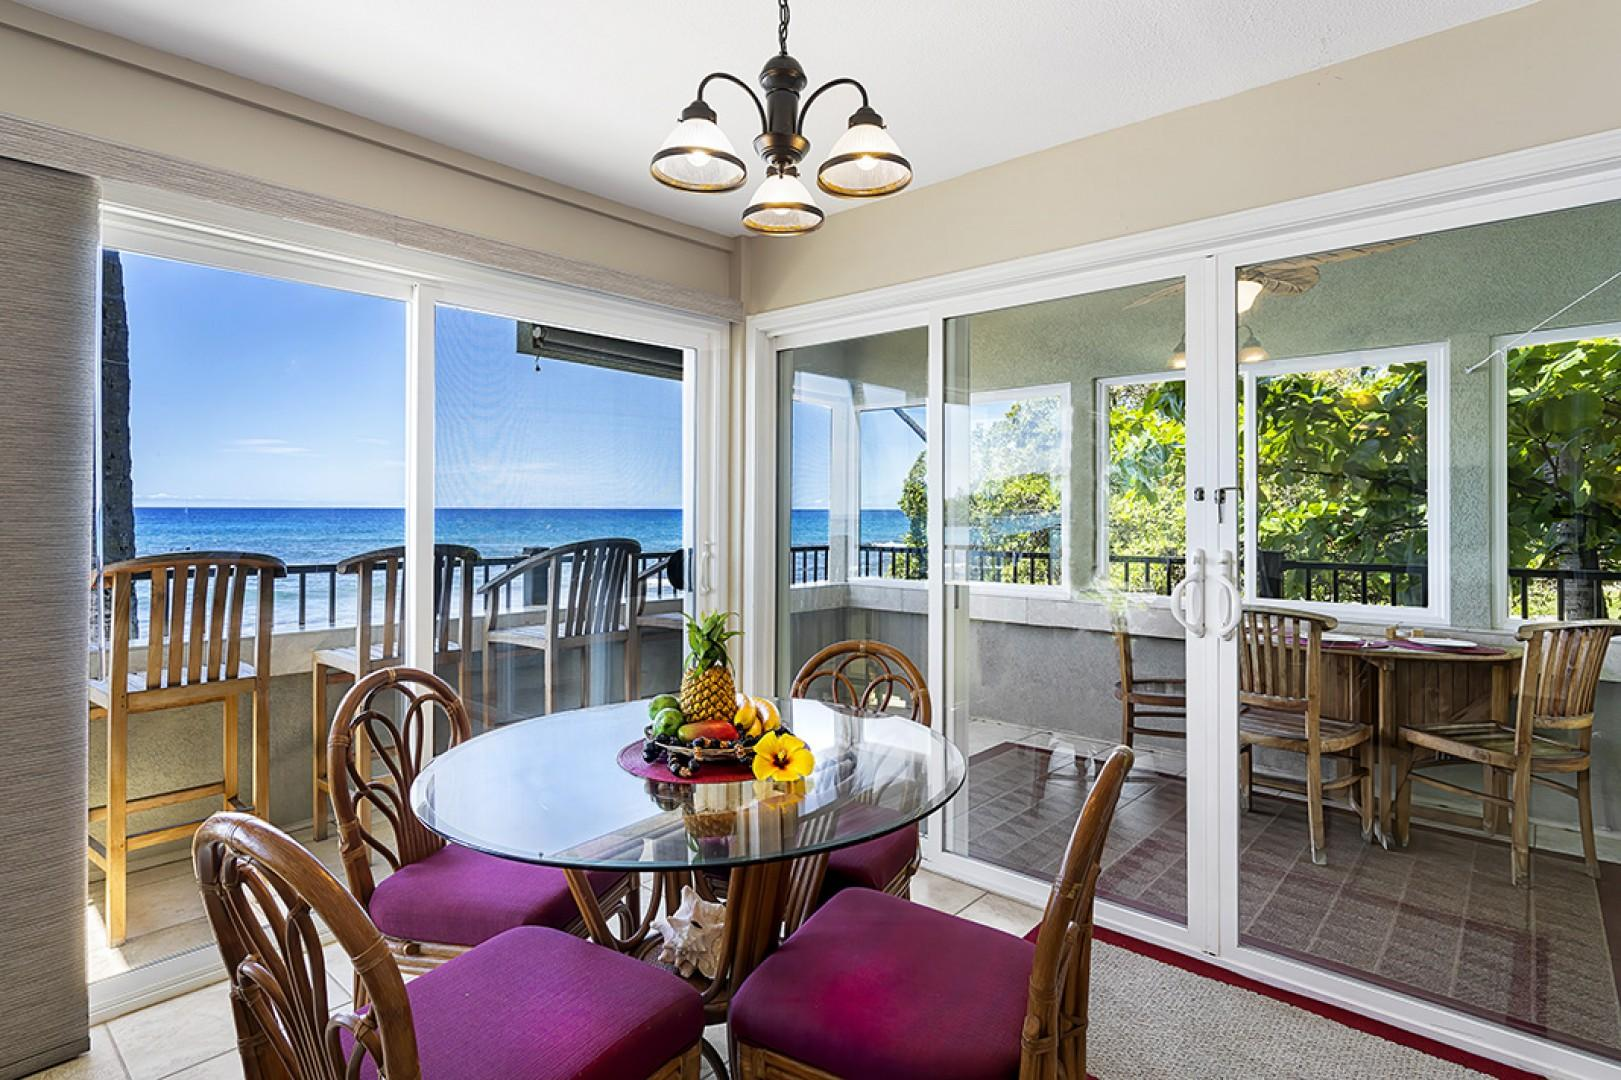 Indoor dining steps from the kitchen with ocean views!